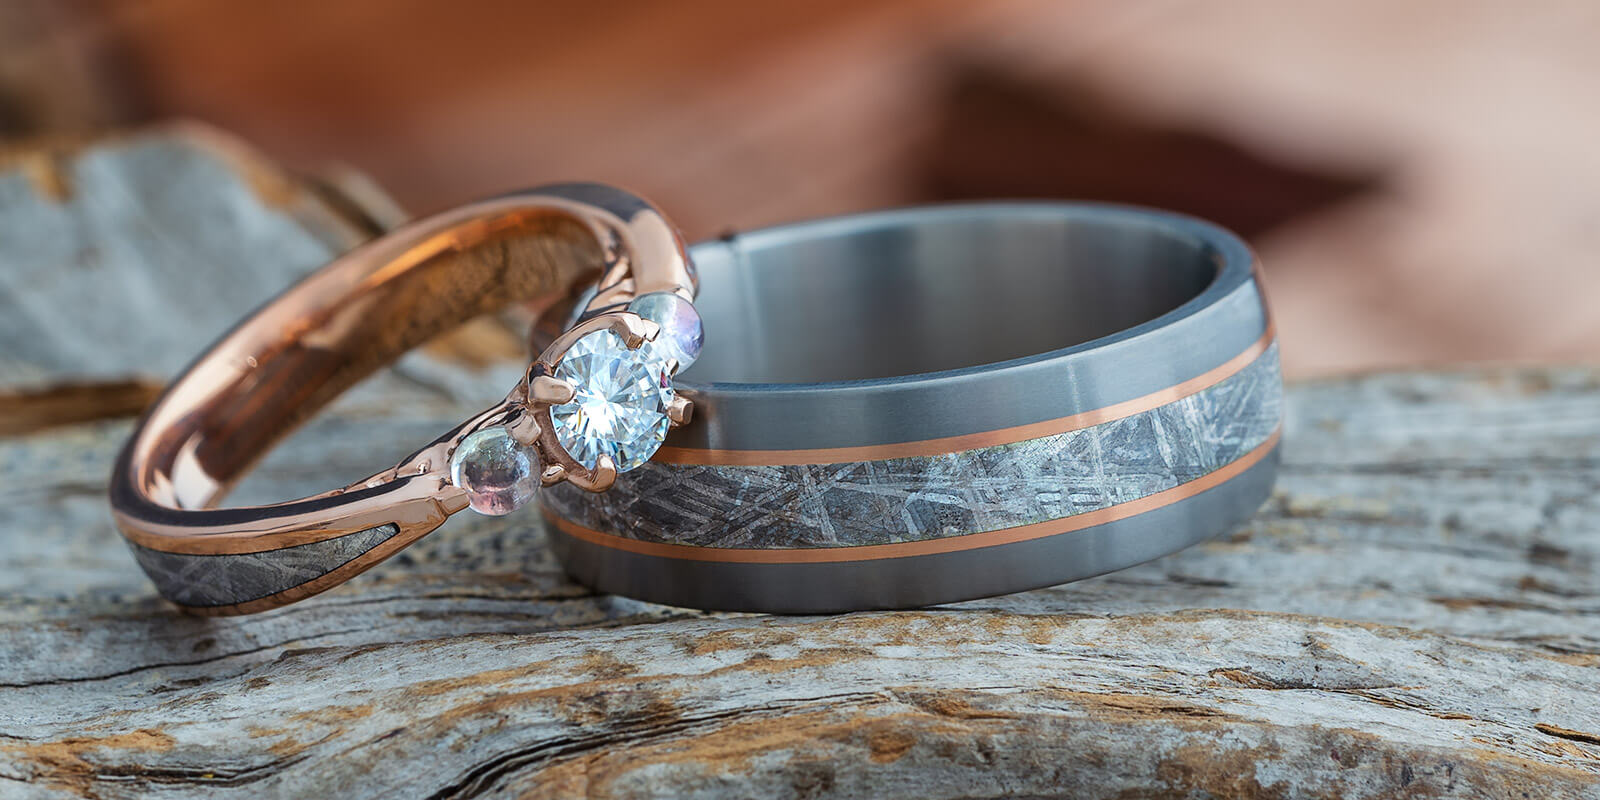 His and Hers Unique Wedding Bands and Engagement Rings Crafted in Rose Gold